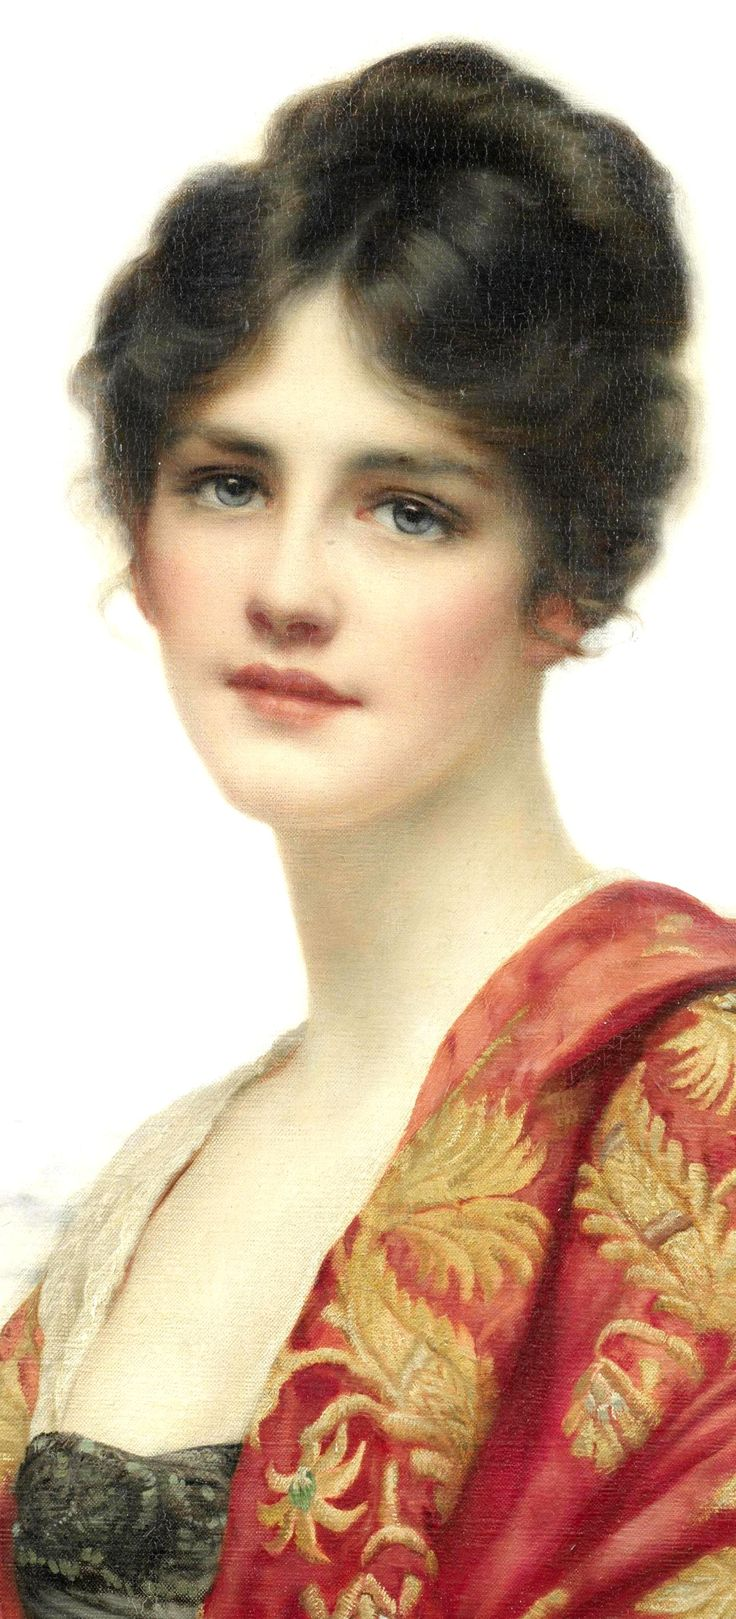 """Artist William Clarke Wontner, this portrait is """"Esme"""".  Wontner was a painter who was part of the neo-classical movement in England. His style favored seductively languorous women.    His work was exhibited at the Royal Academy from 1879, at the Society of British Artists and at the Royal Institute of Painters in Water Colors."""